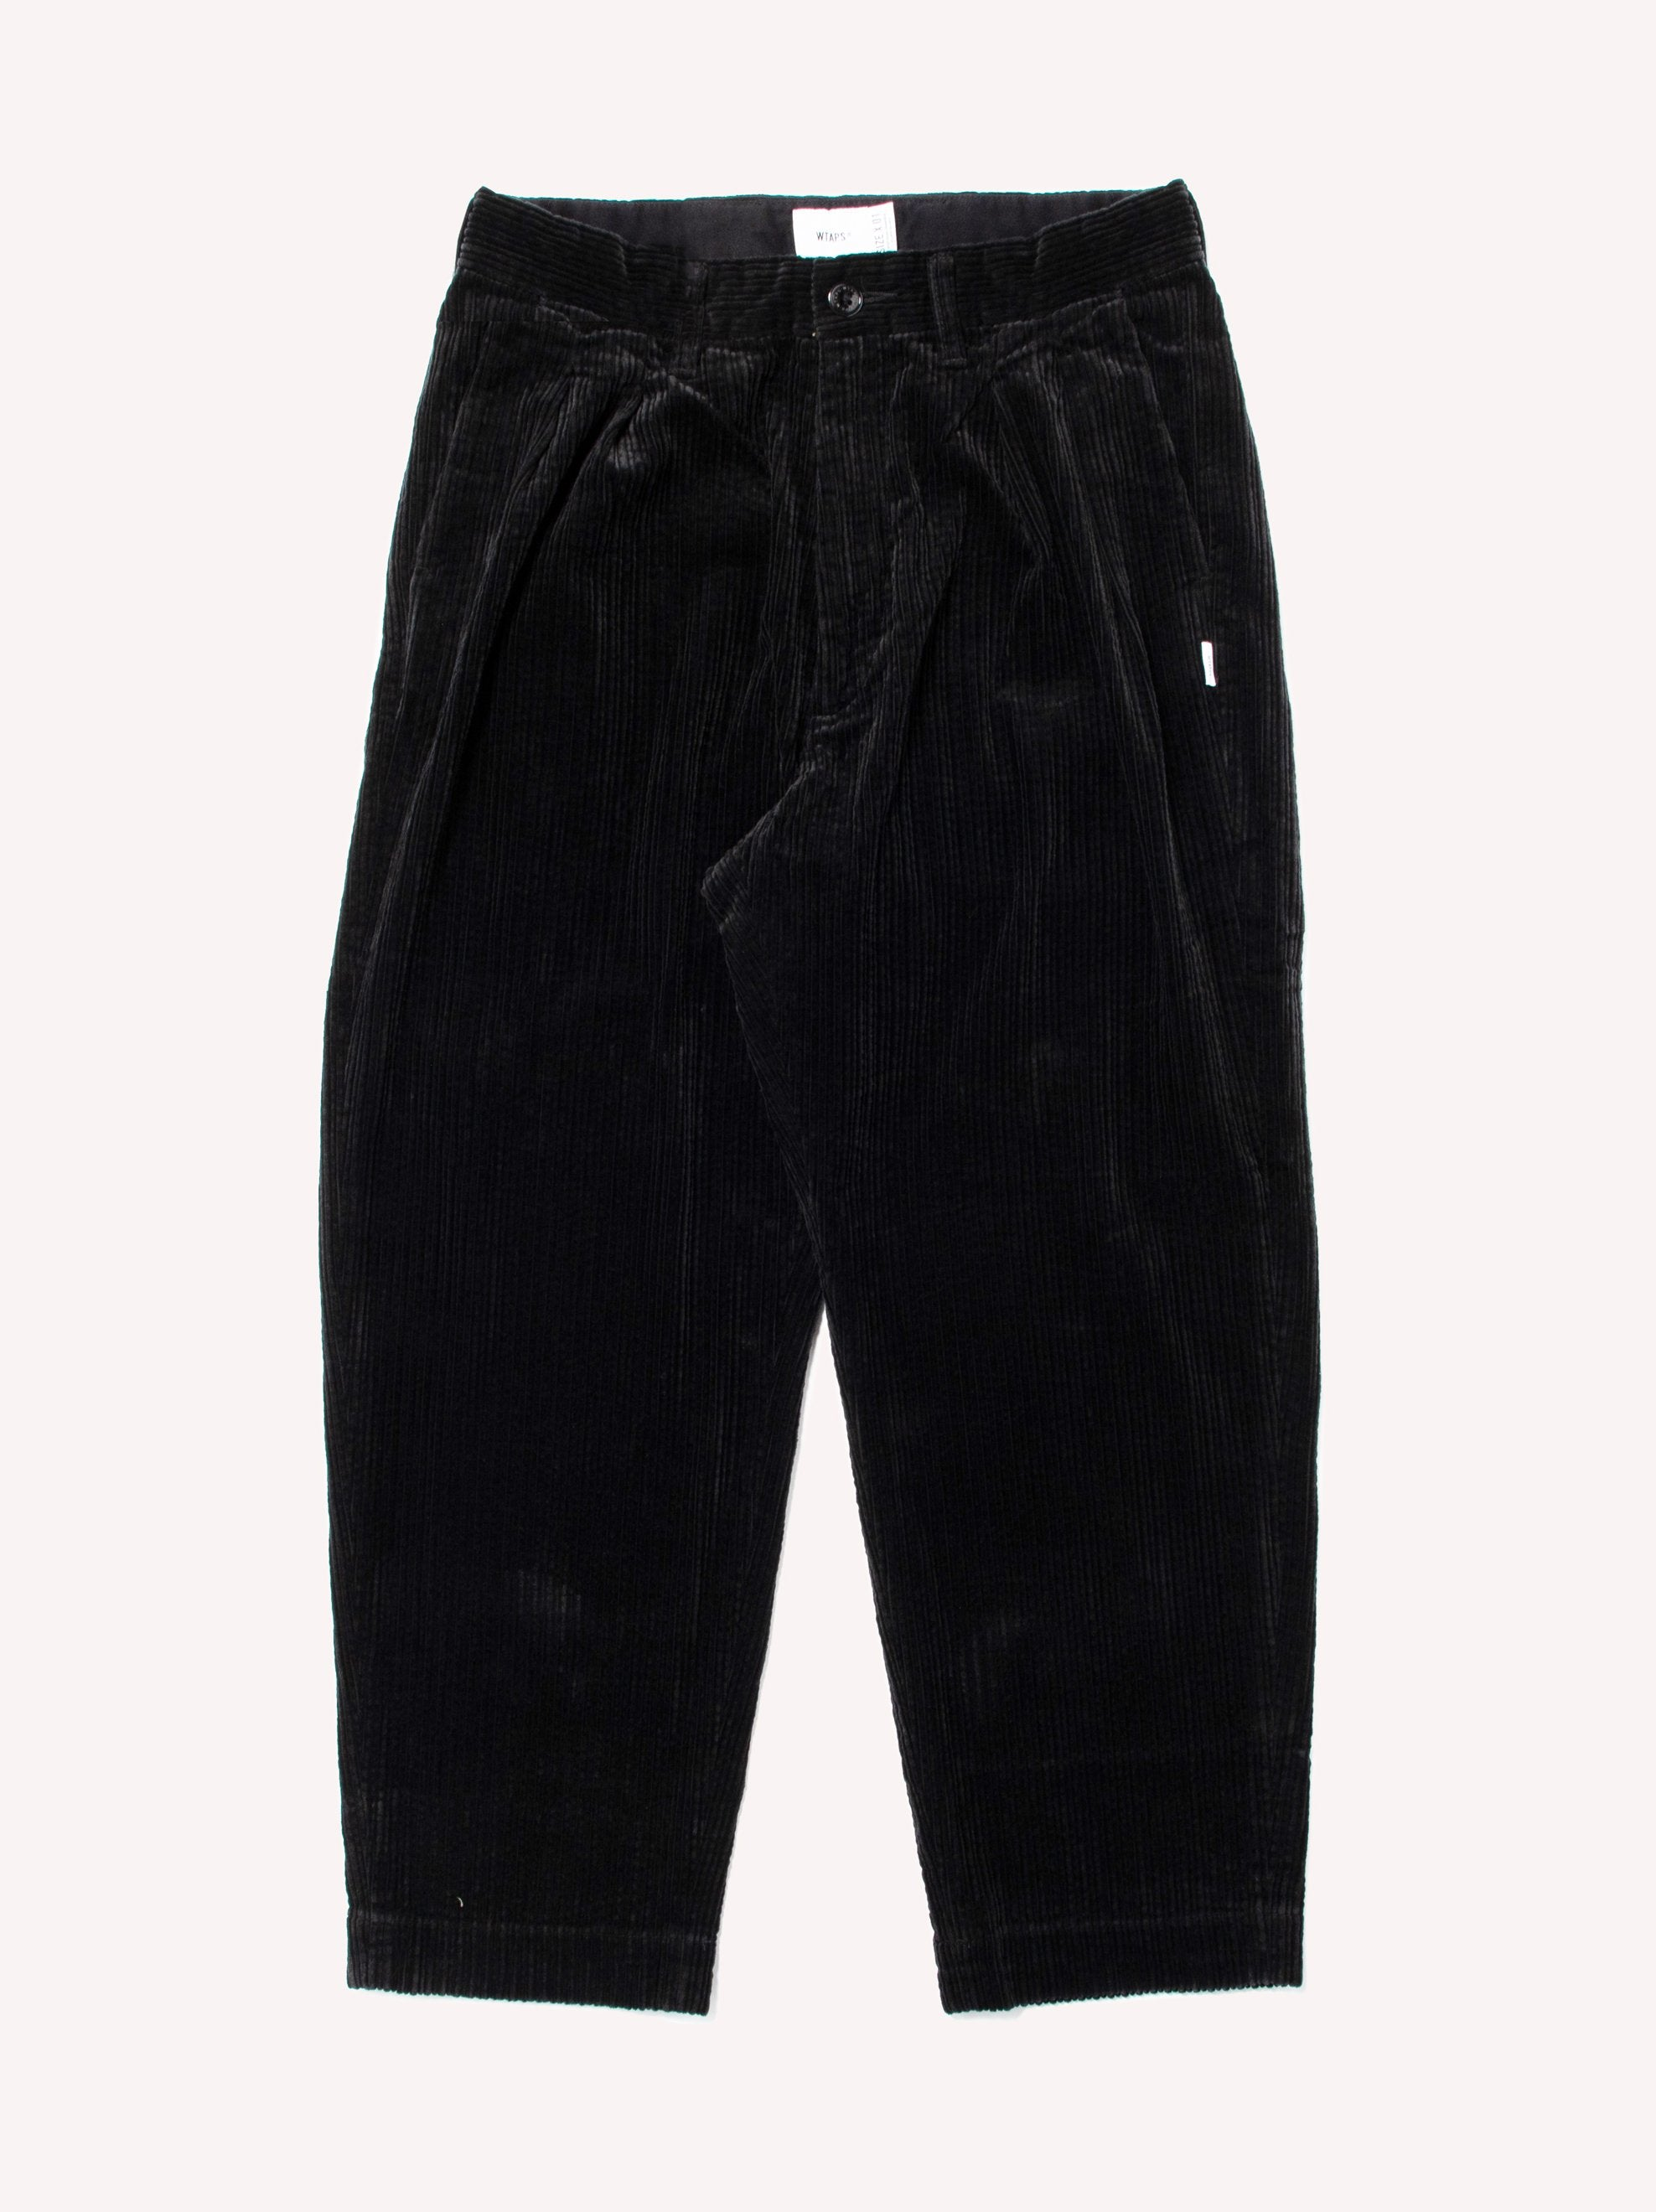 Black Tuck 02 / Trousers. Cotton. Corduroy 1